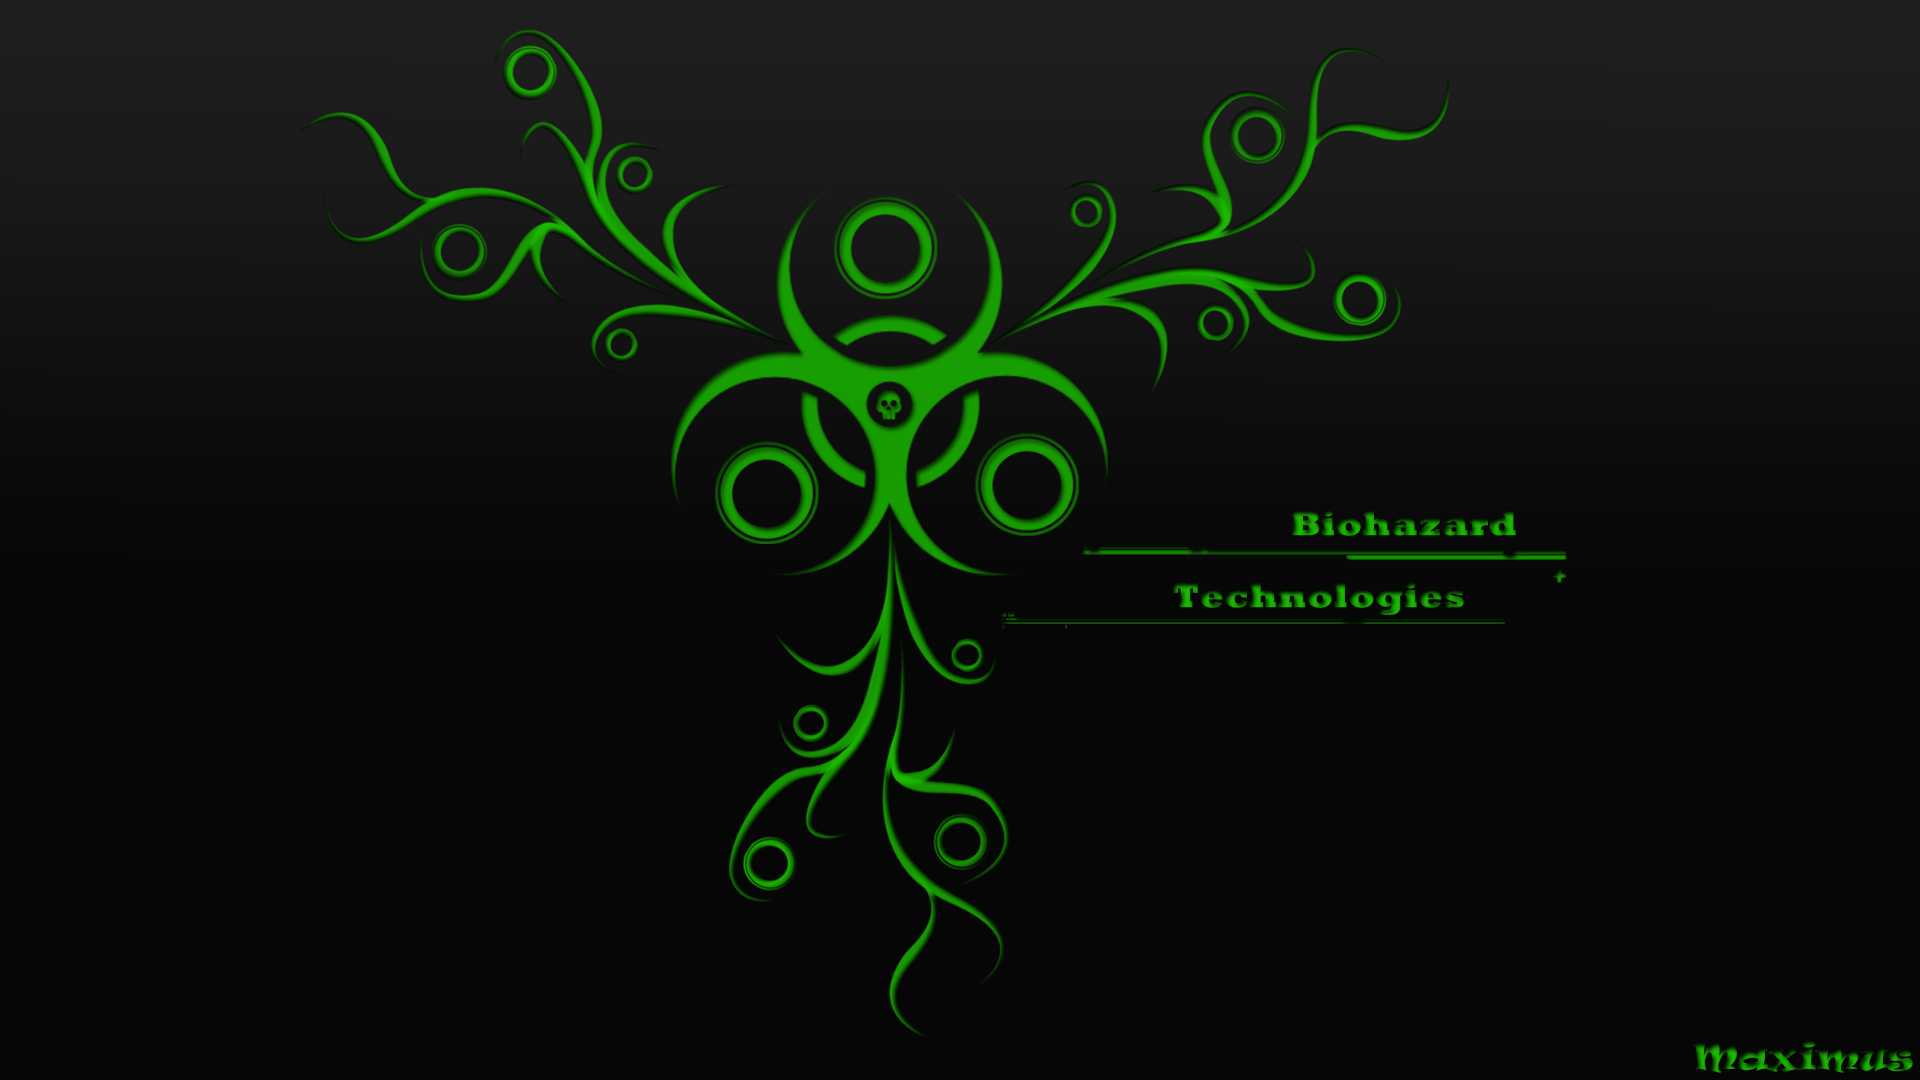 Green Biohazard Hd Images Pictures   Becuo 1920x1080